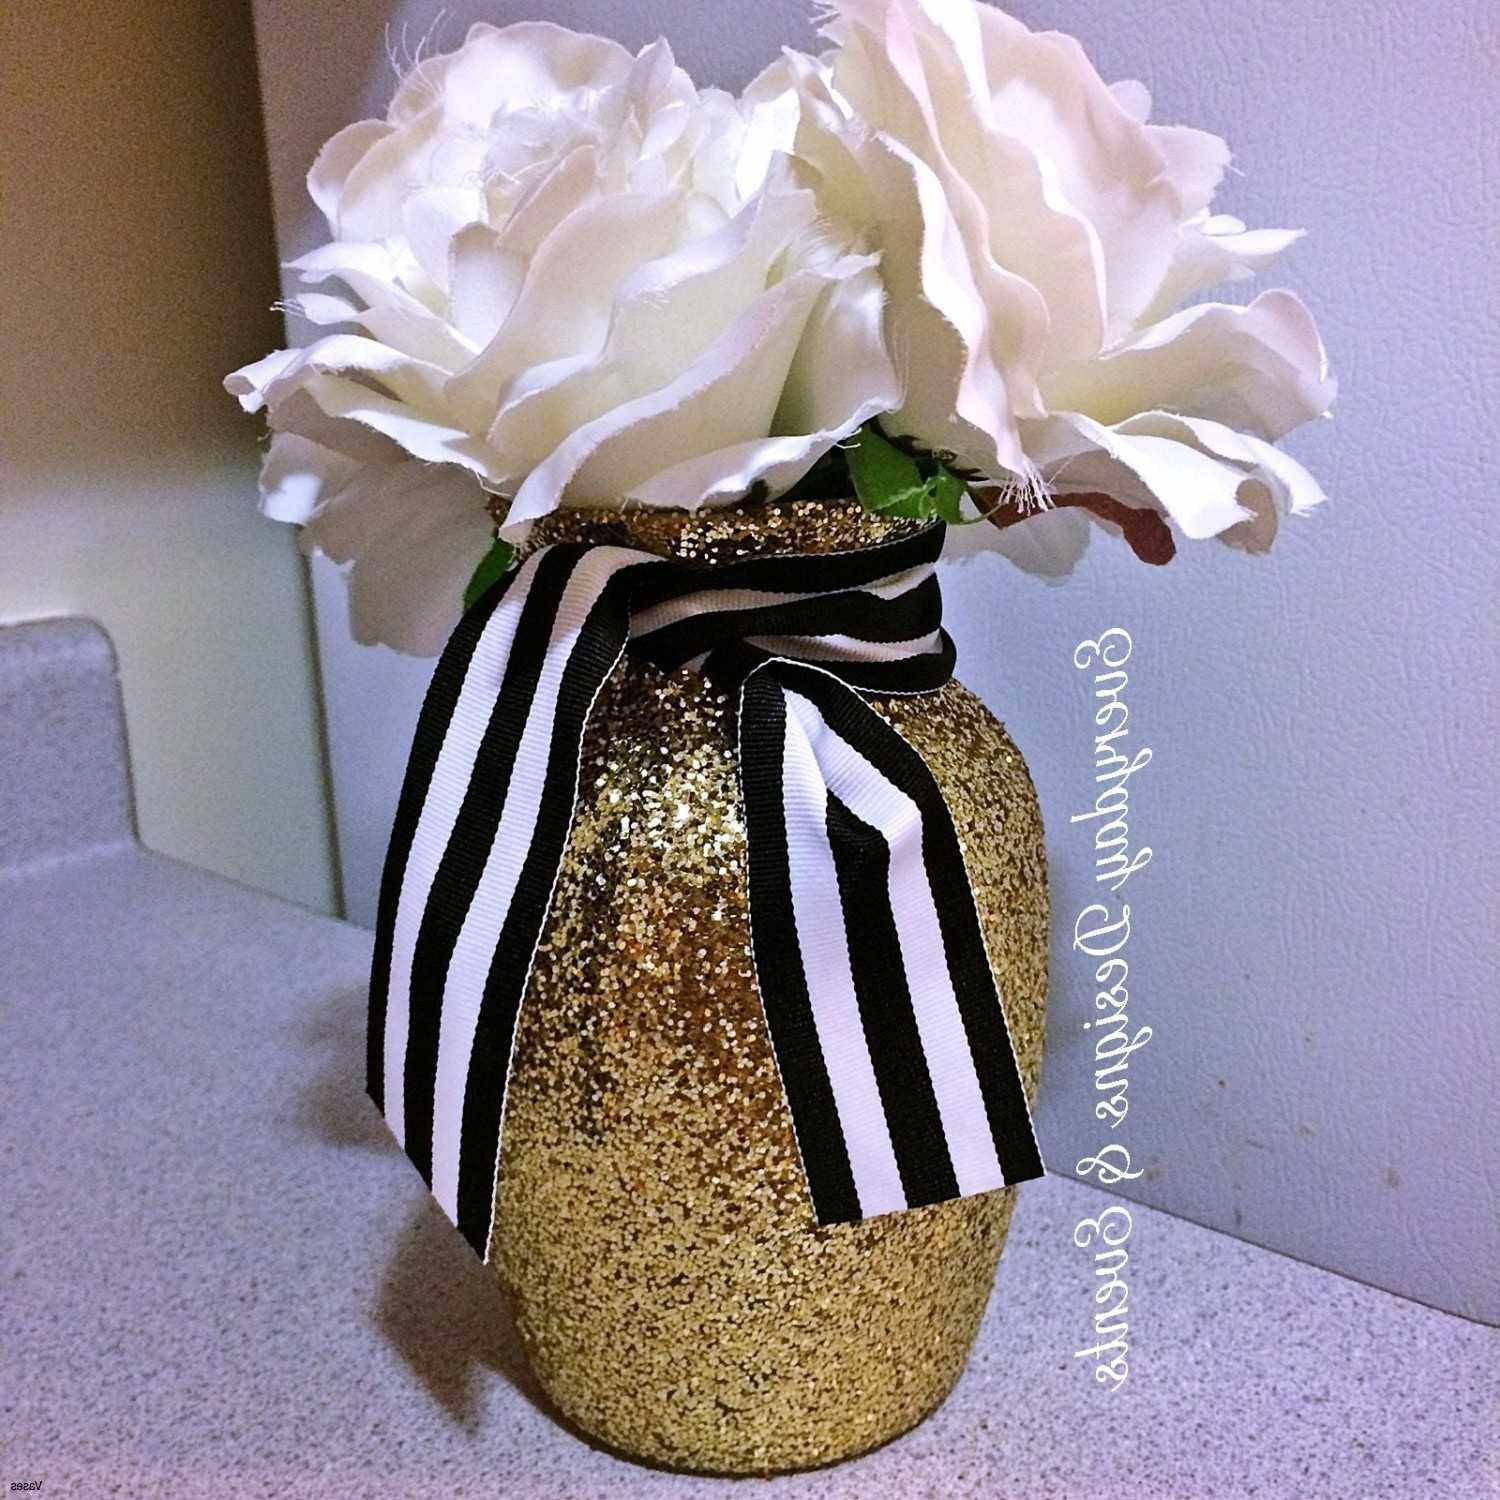 light up vases weddings of light pink wedding shoes wedding dress gallery pertaining to black and gold flowers new vases baby shower flower tutu vase centerpiece for a i 0d